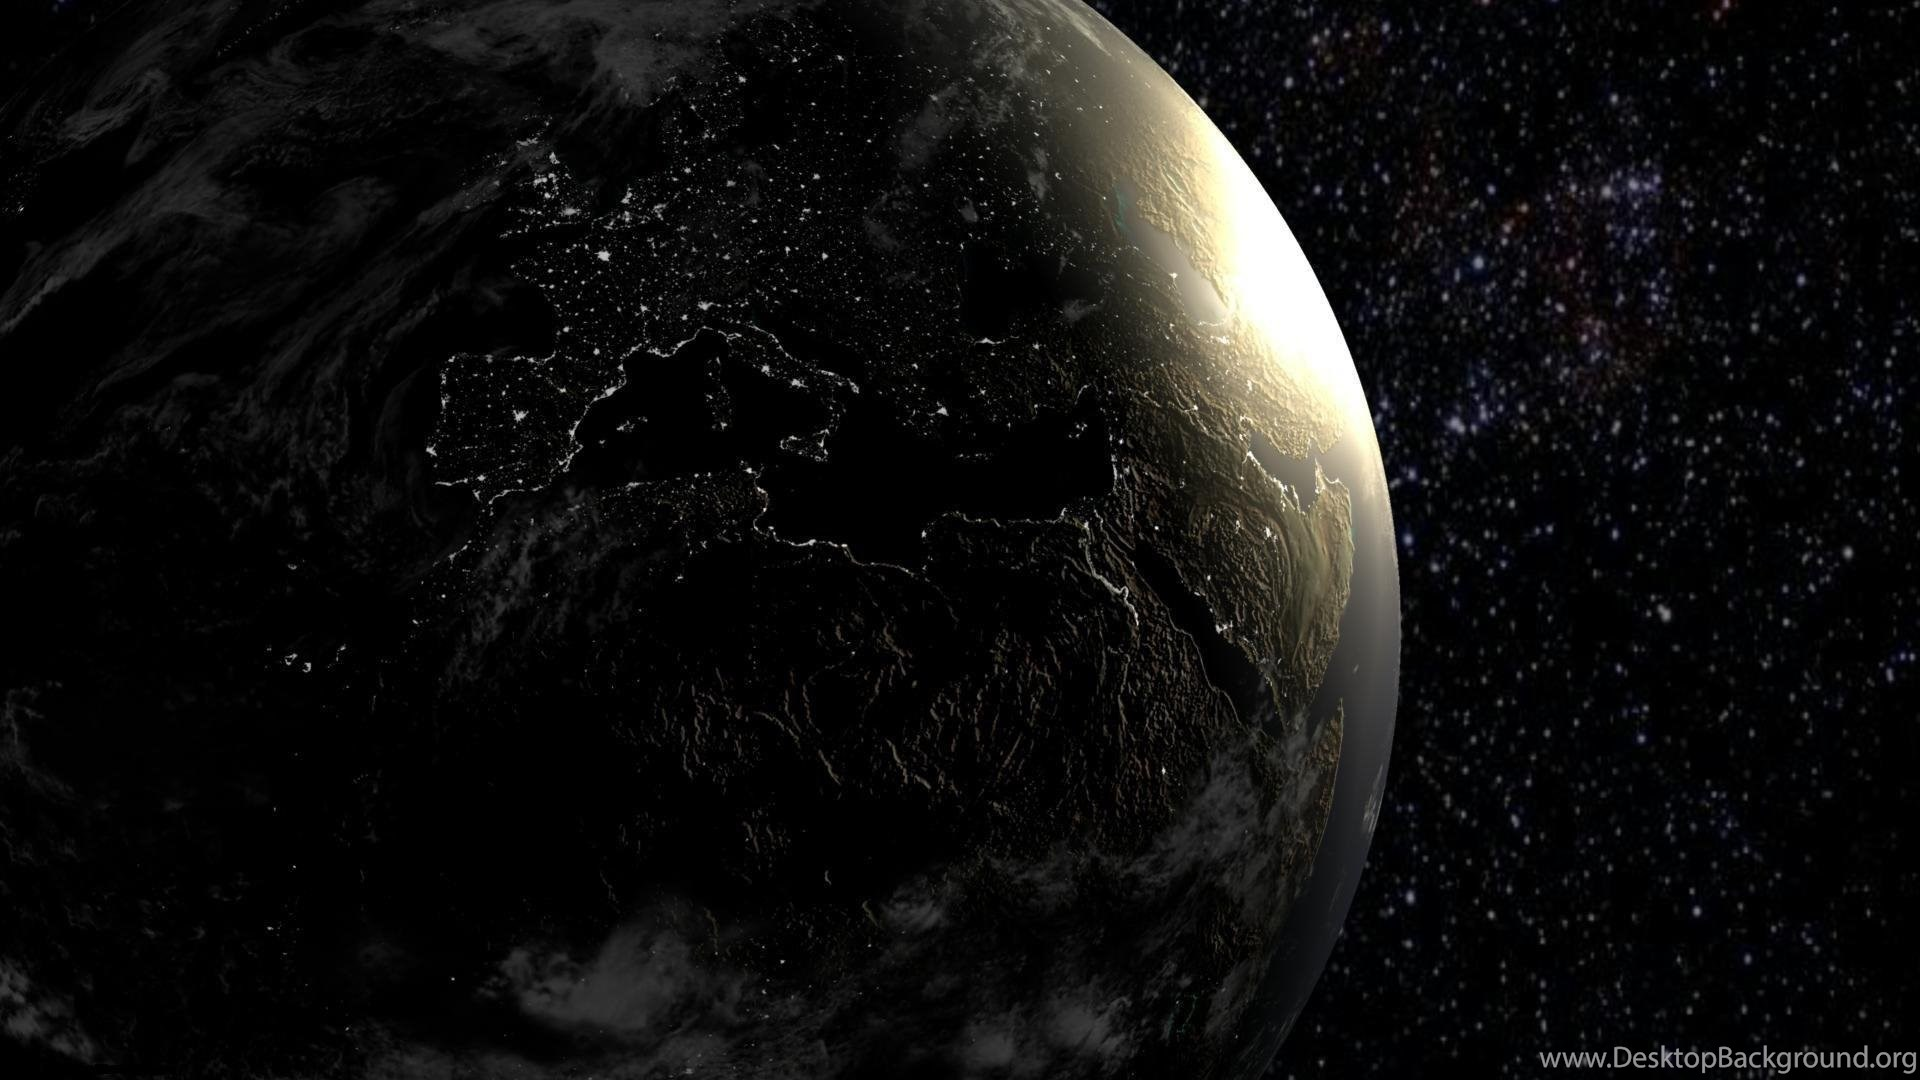 Dark Space Background: Dark Space Wallpapers 1920 1080 High Definition Wallpapers